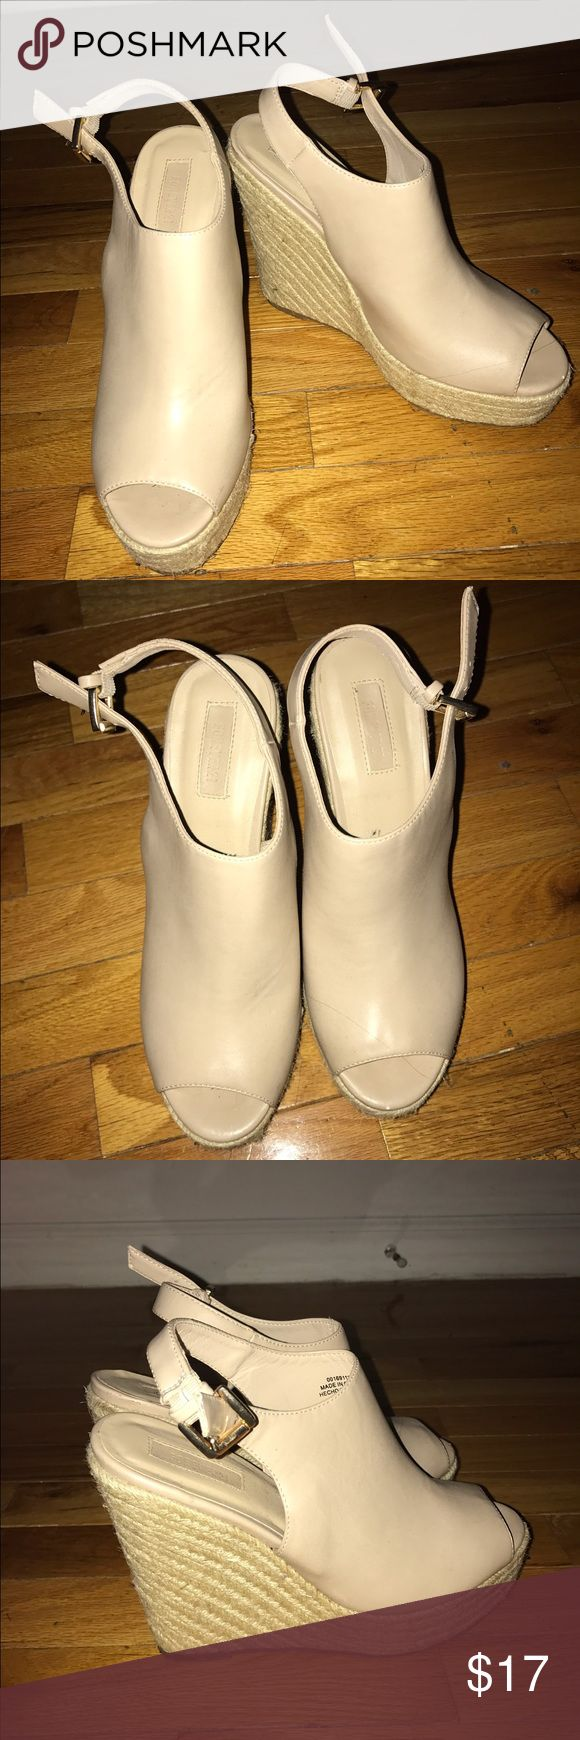 Nude Leather Wedges Open toe nude leather wedges Forever 21 Shoes Wedges